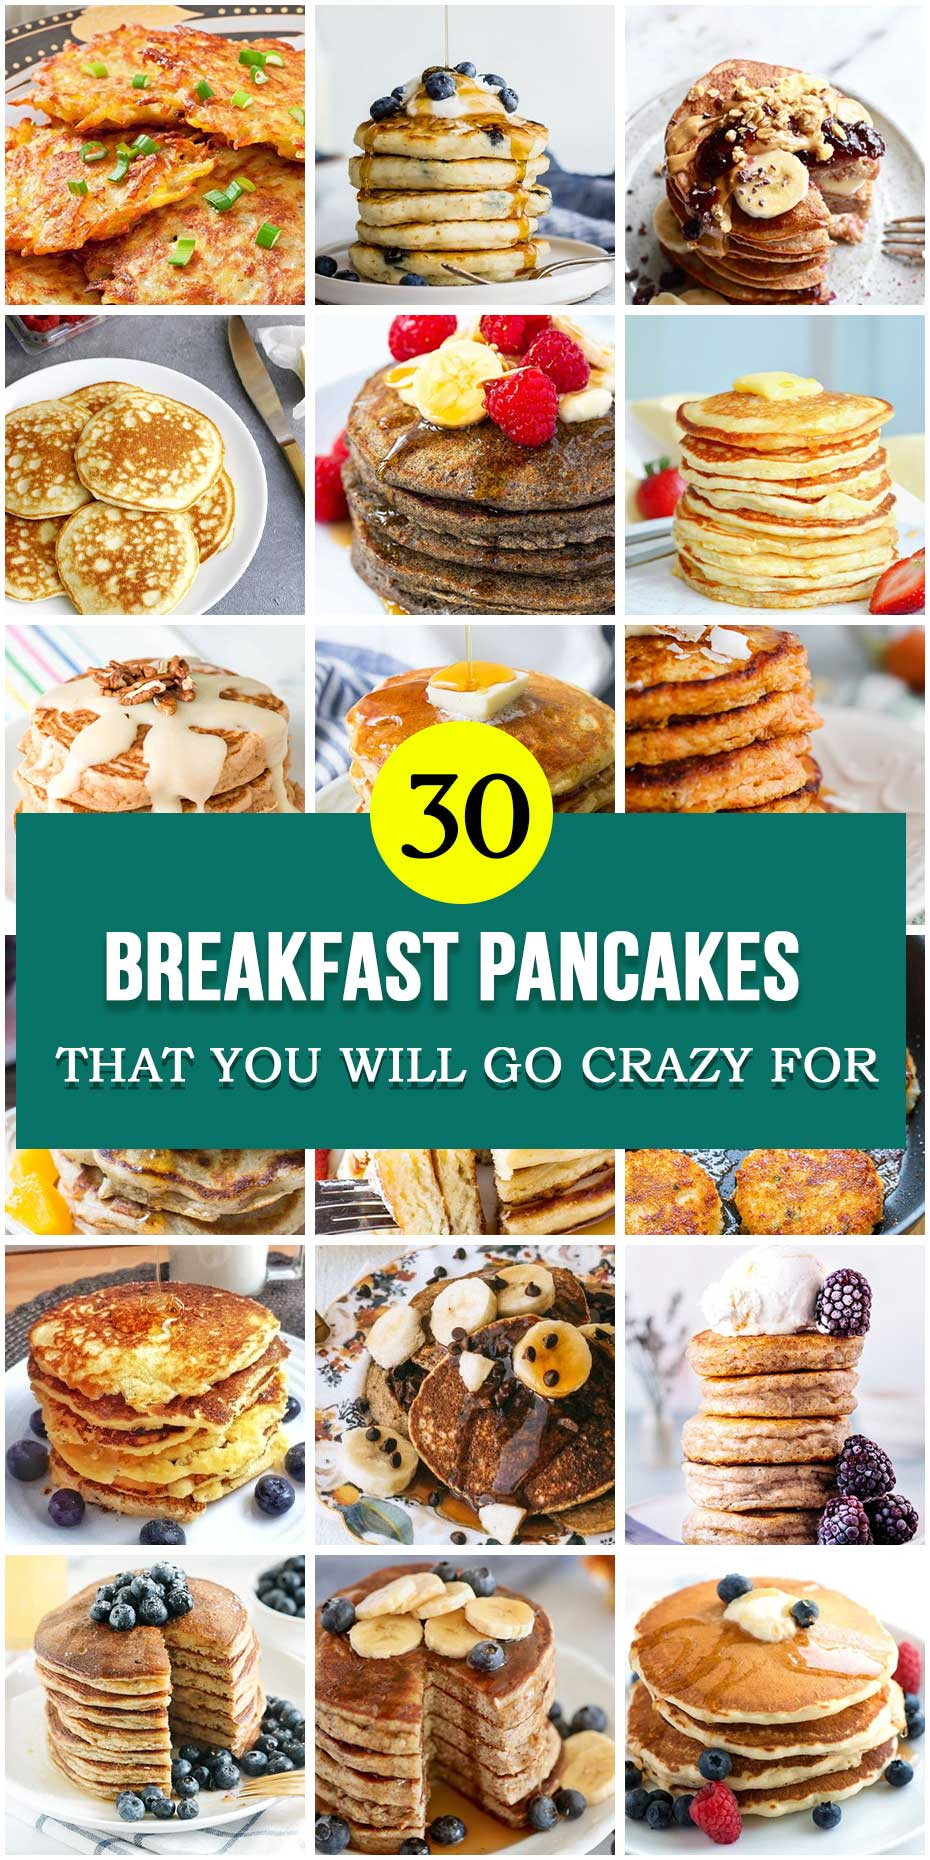 30 Breakfast Pancakes That You Will Go Crazy For